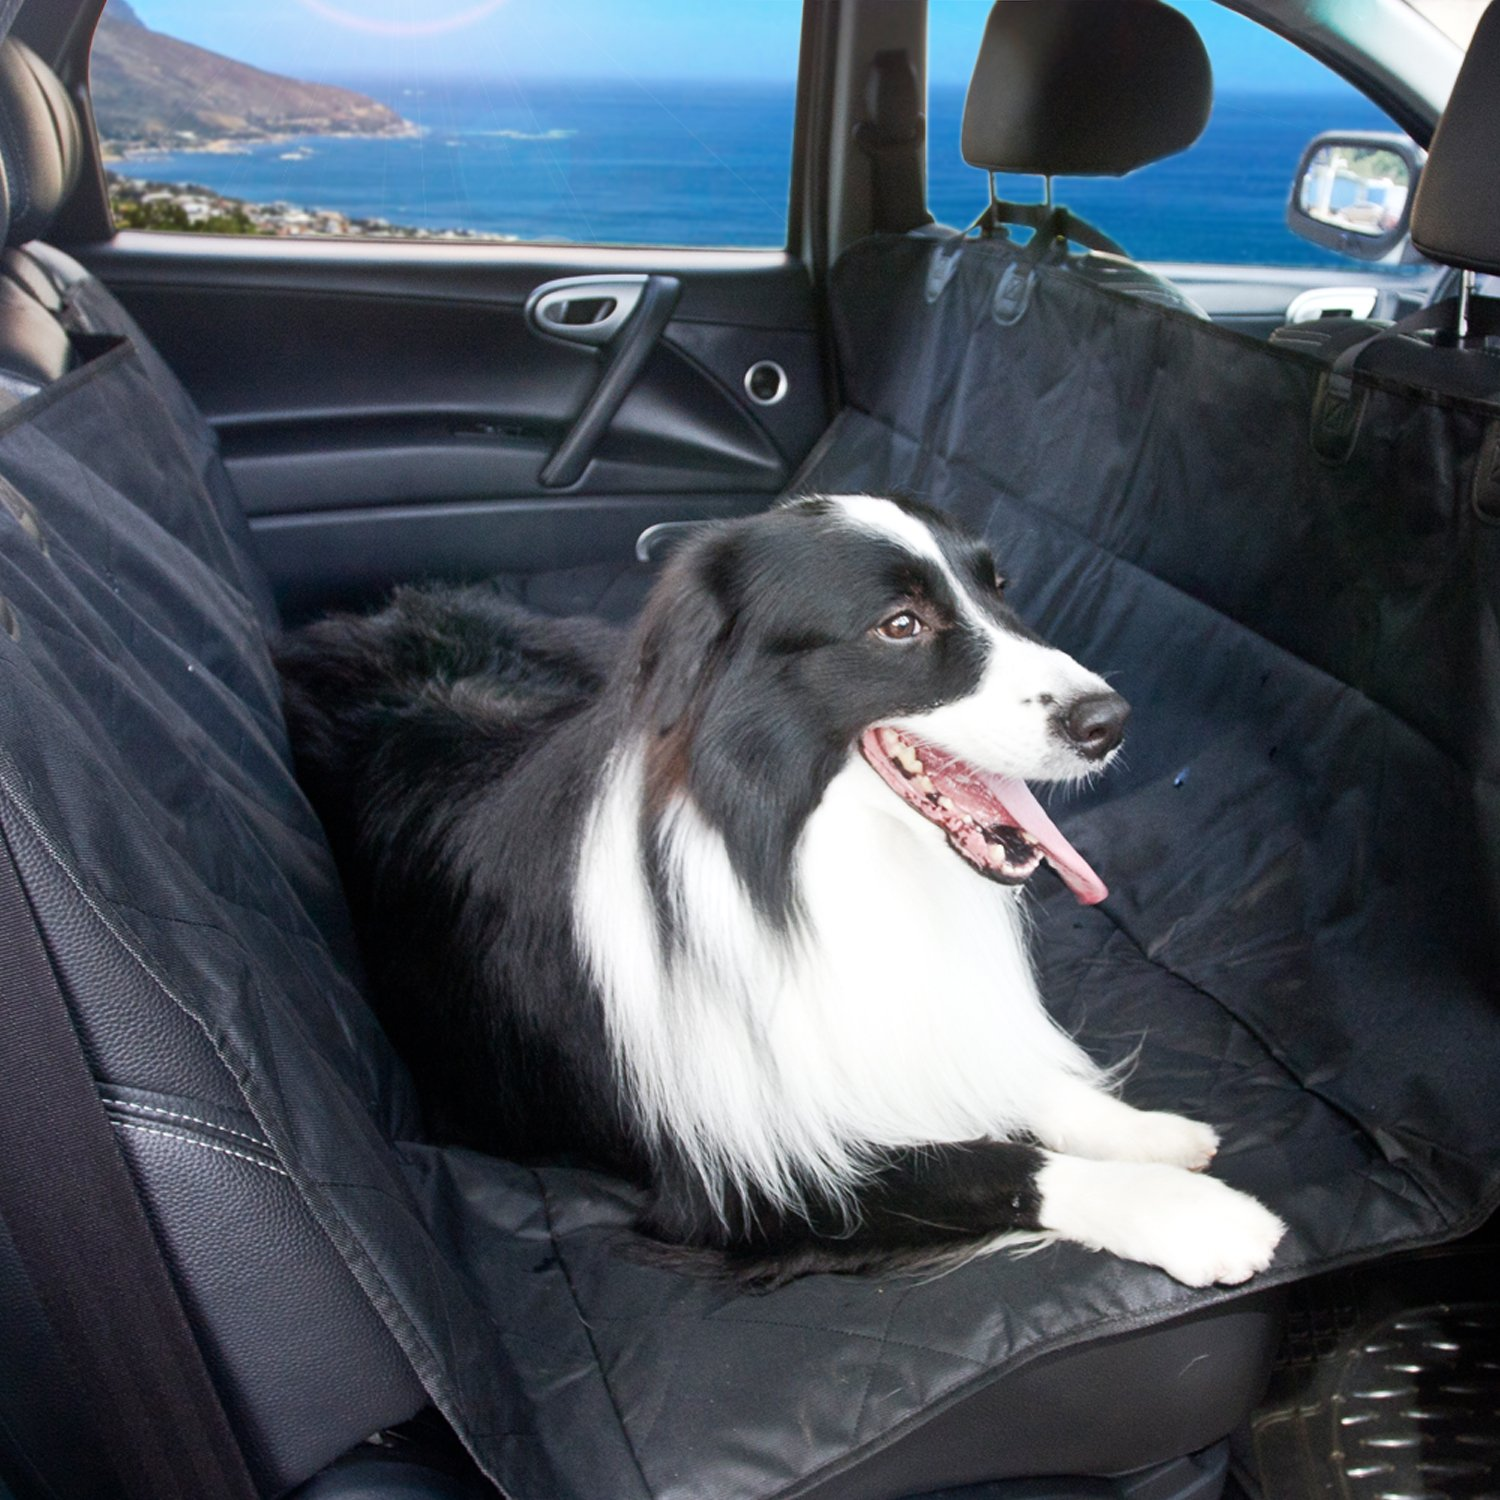 MairGwall 55 55 Waterproof Pet Seat Cover Dog Car Seat Cover with Non Slip Backing Anchors General Use for All Cars Large, Black